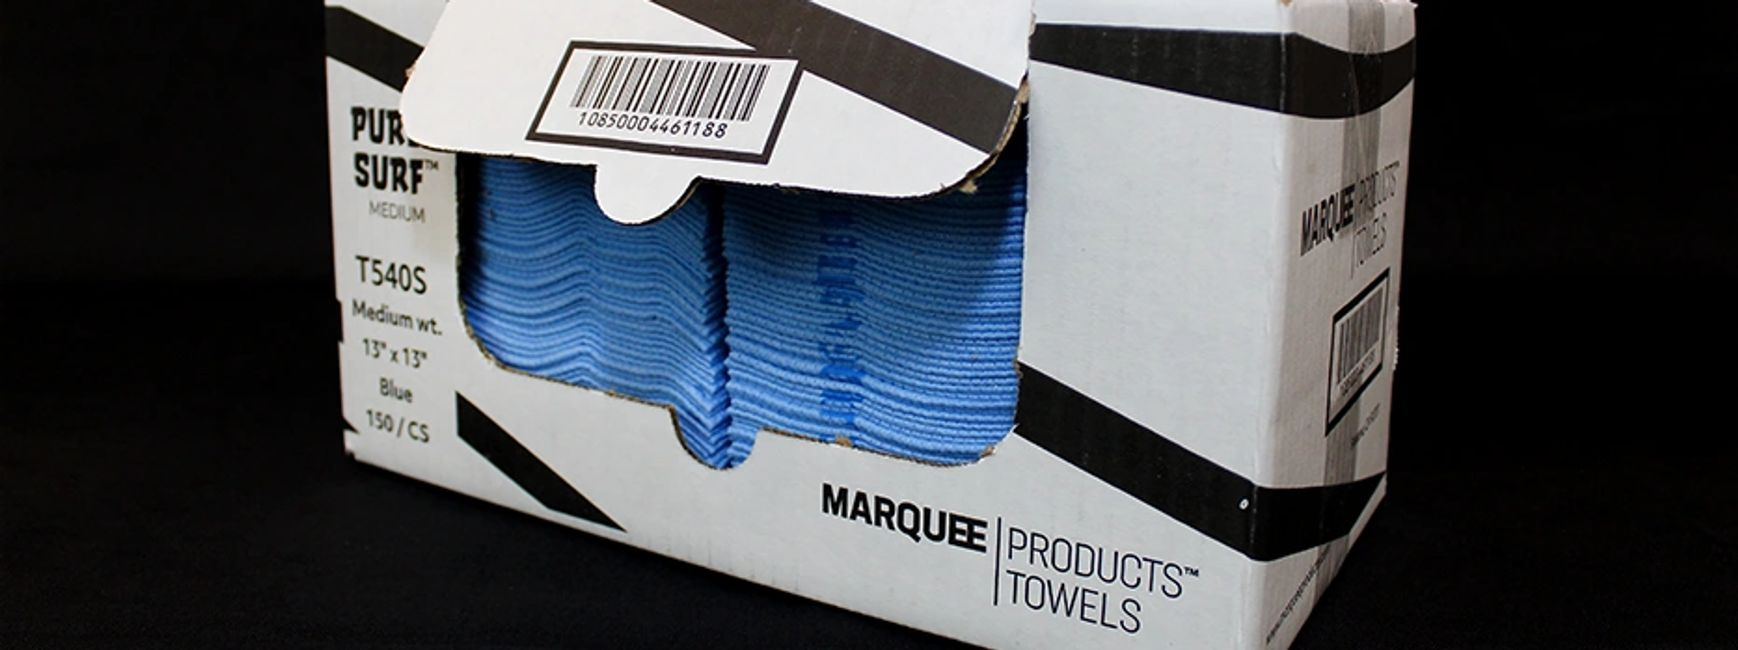 Marquee Products Towels promote a clean and healthy environment.